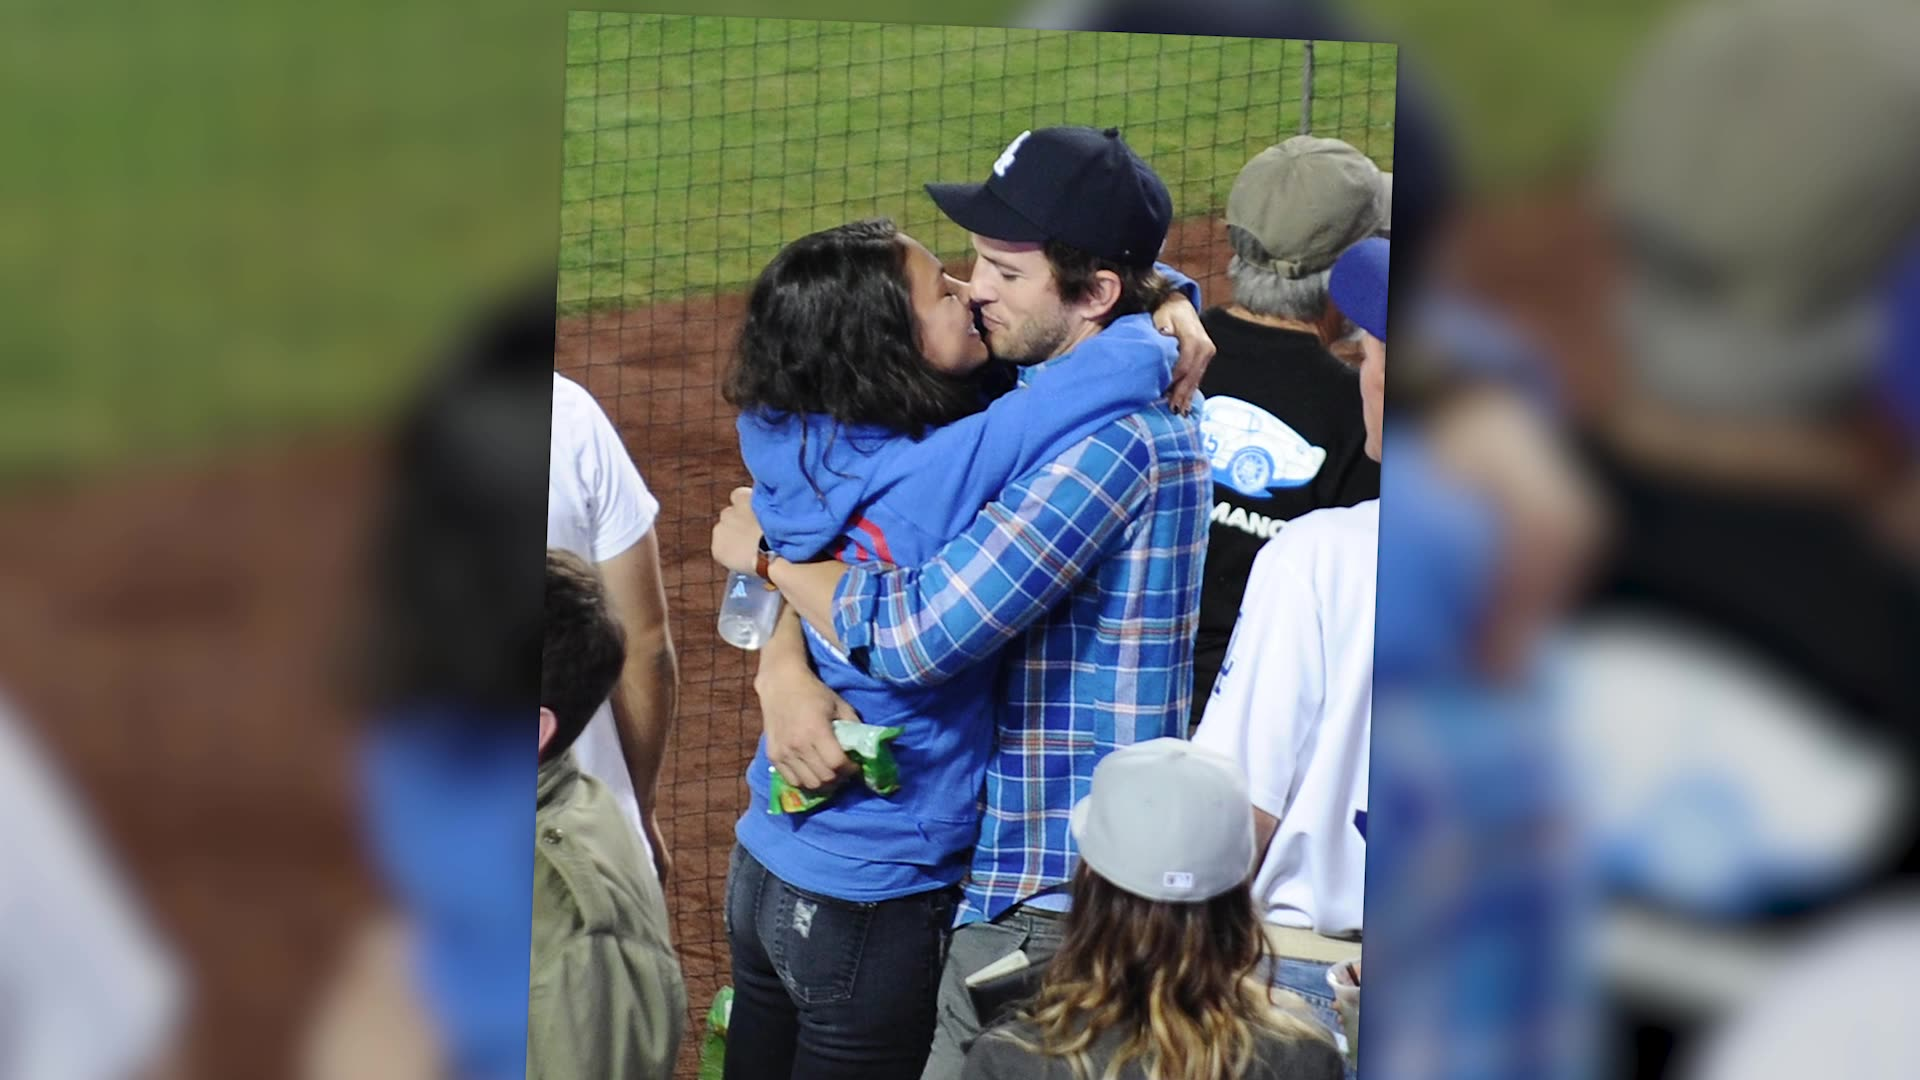 Ashton Kutcher & Mila Kunis Share Some PDA At A Dodgers Game